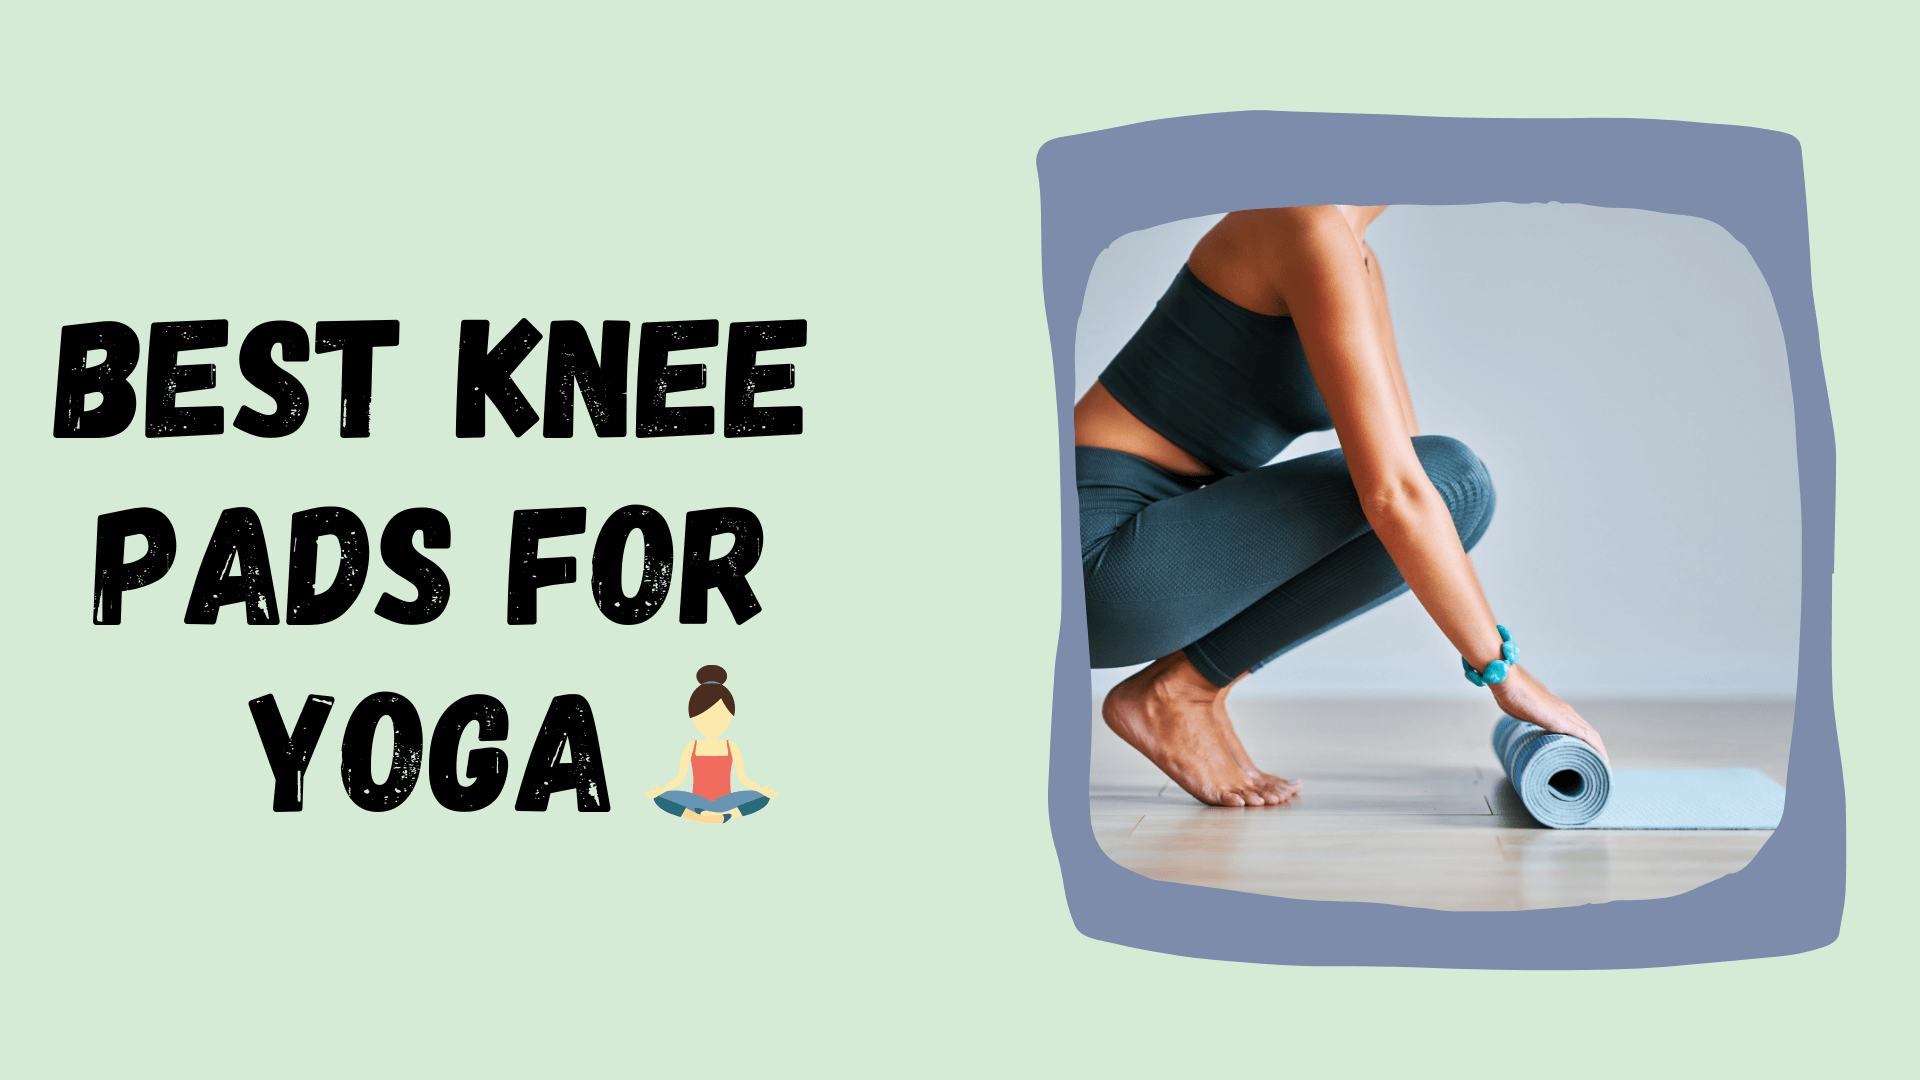 Best Knee Pads for Yoga